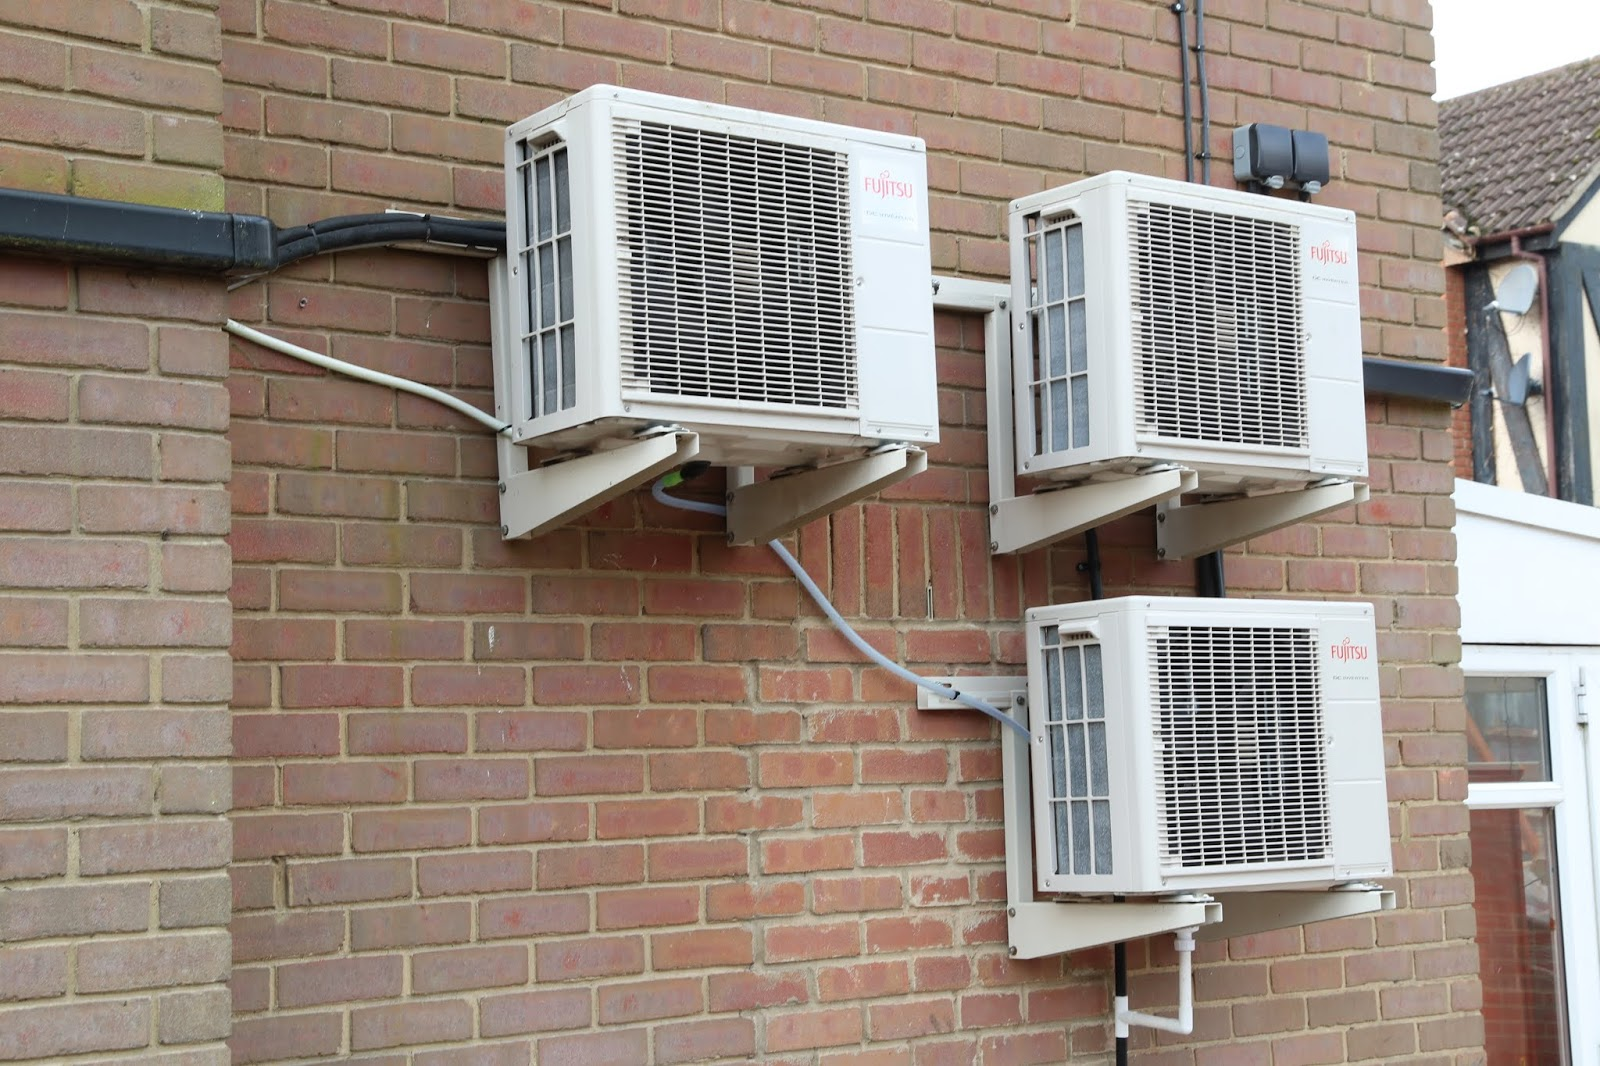 Revk S Rants Air Conditioning At Home Planning Permission